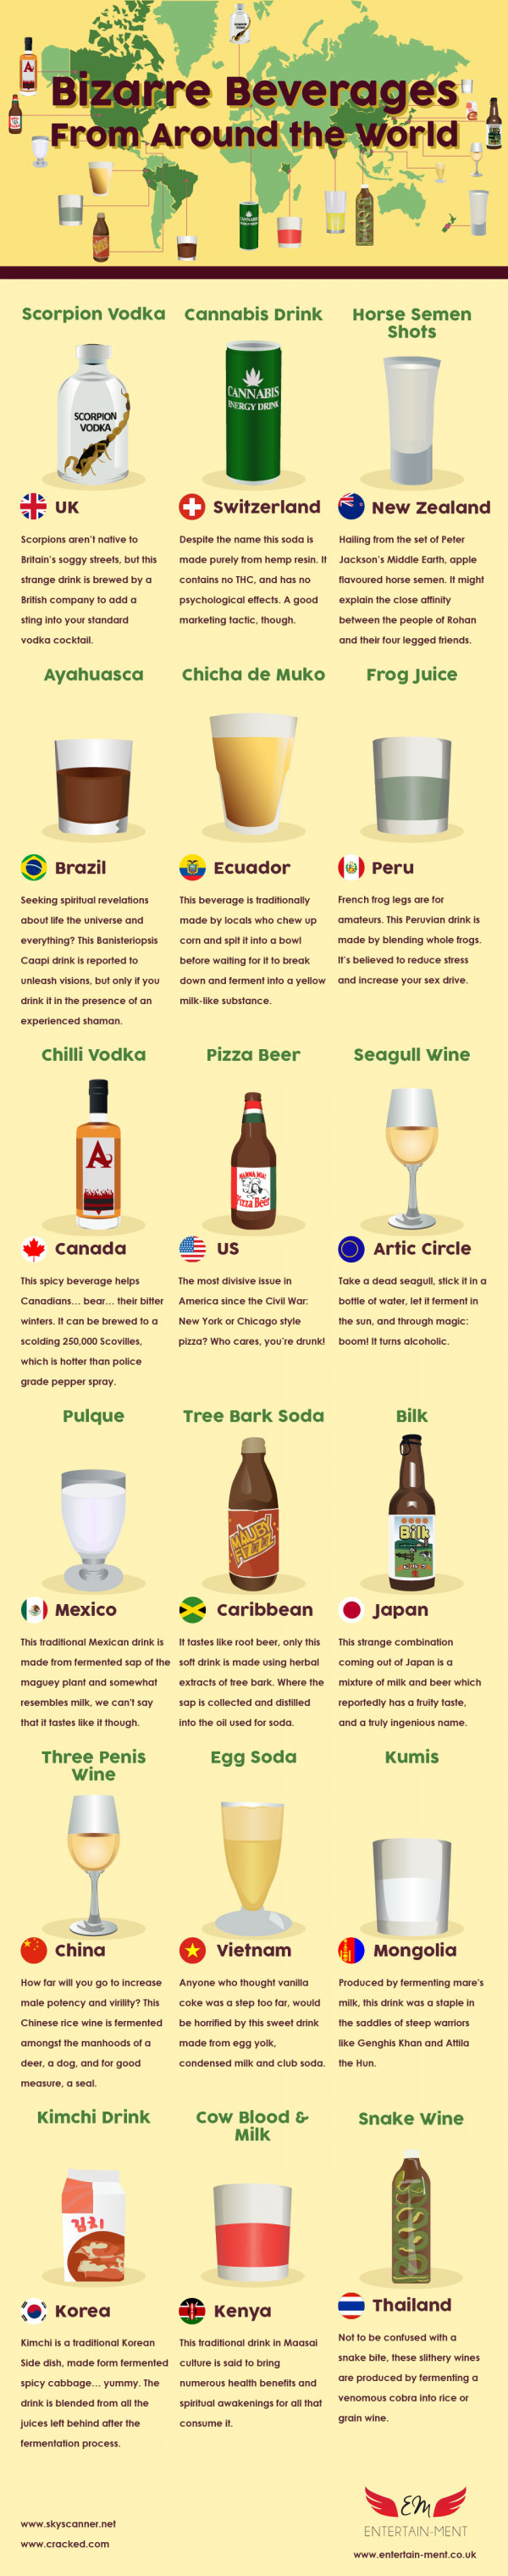 Bizarre Beverages From Around the World